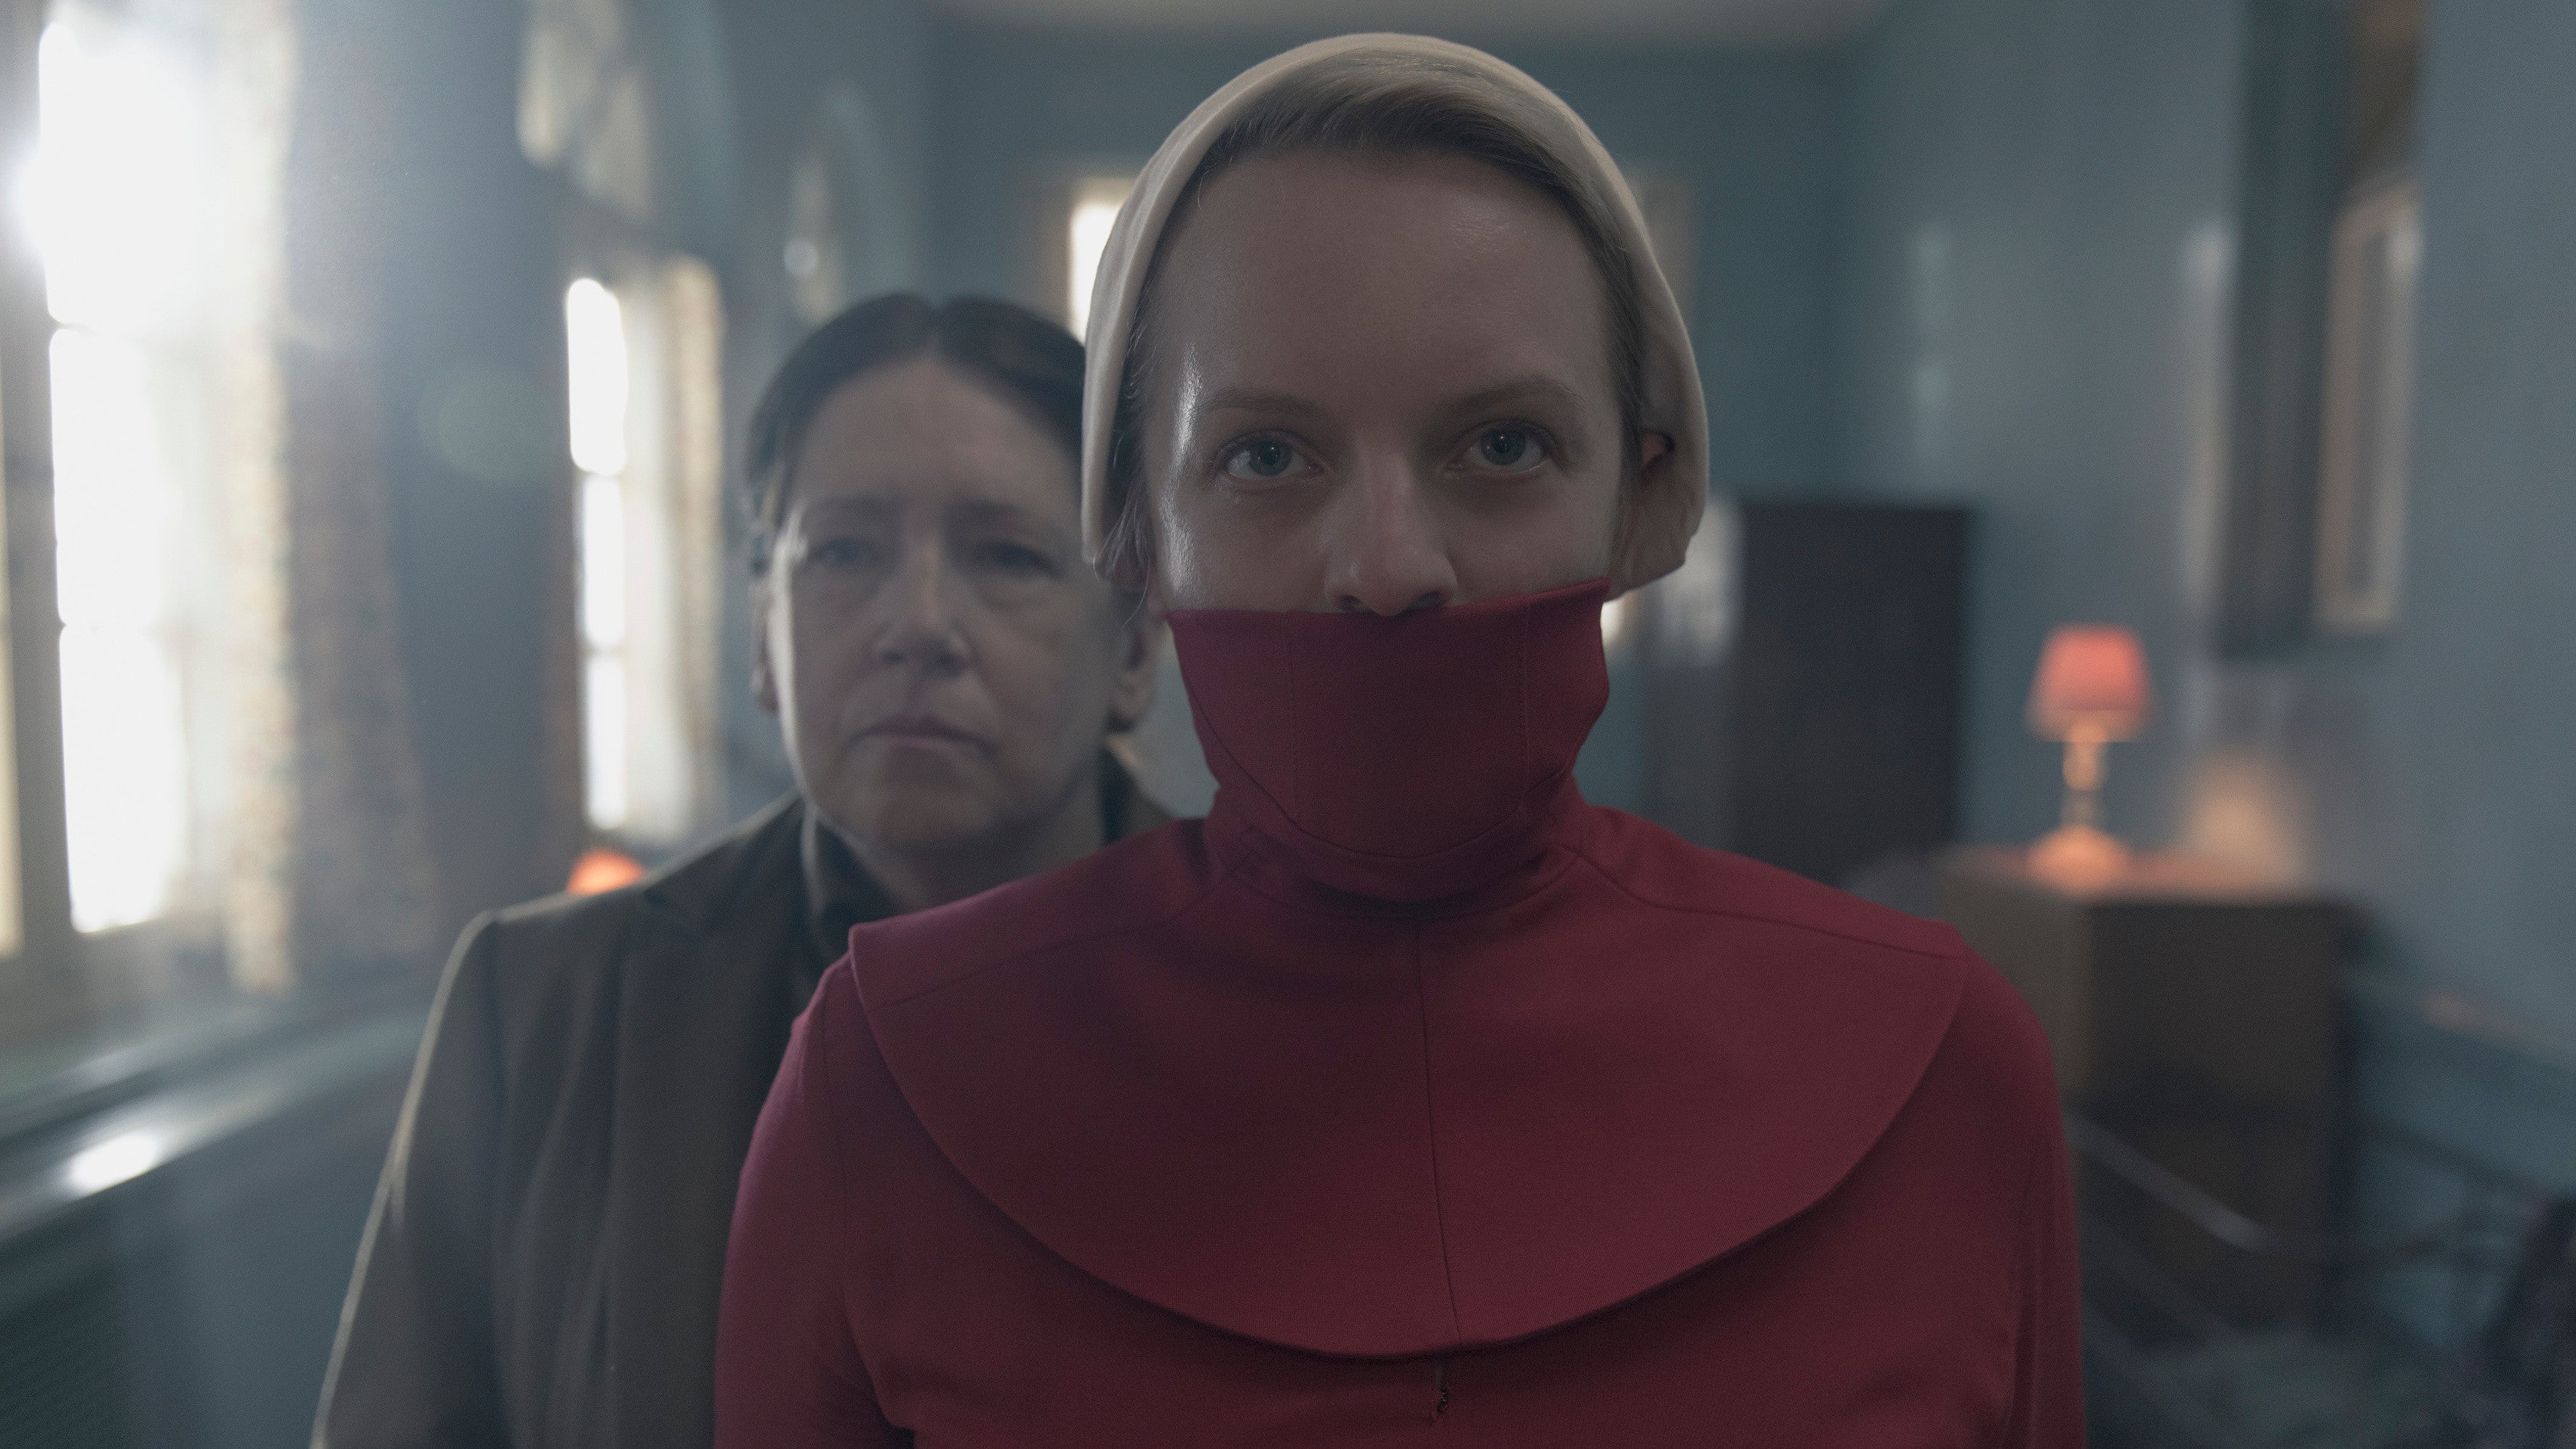 Hey, Handmaid's Tale, I Have Some Questions About This Body Horror Thing